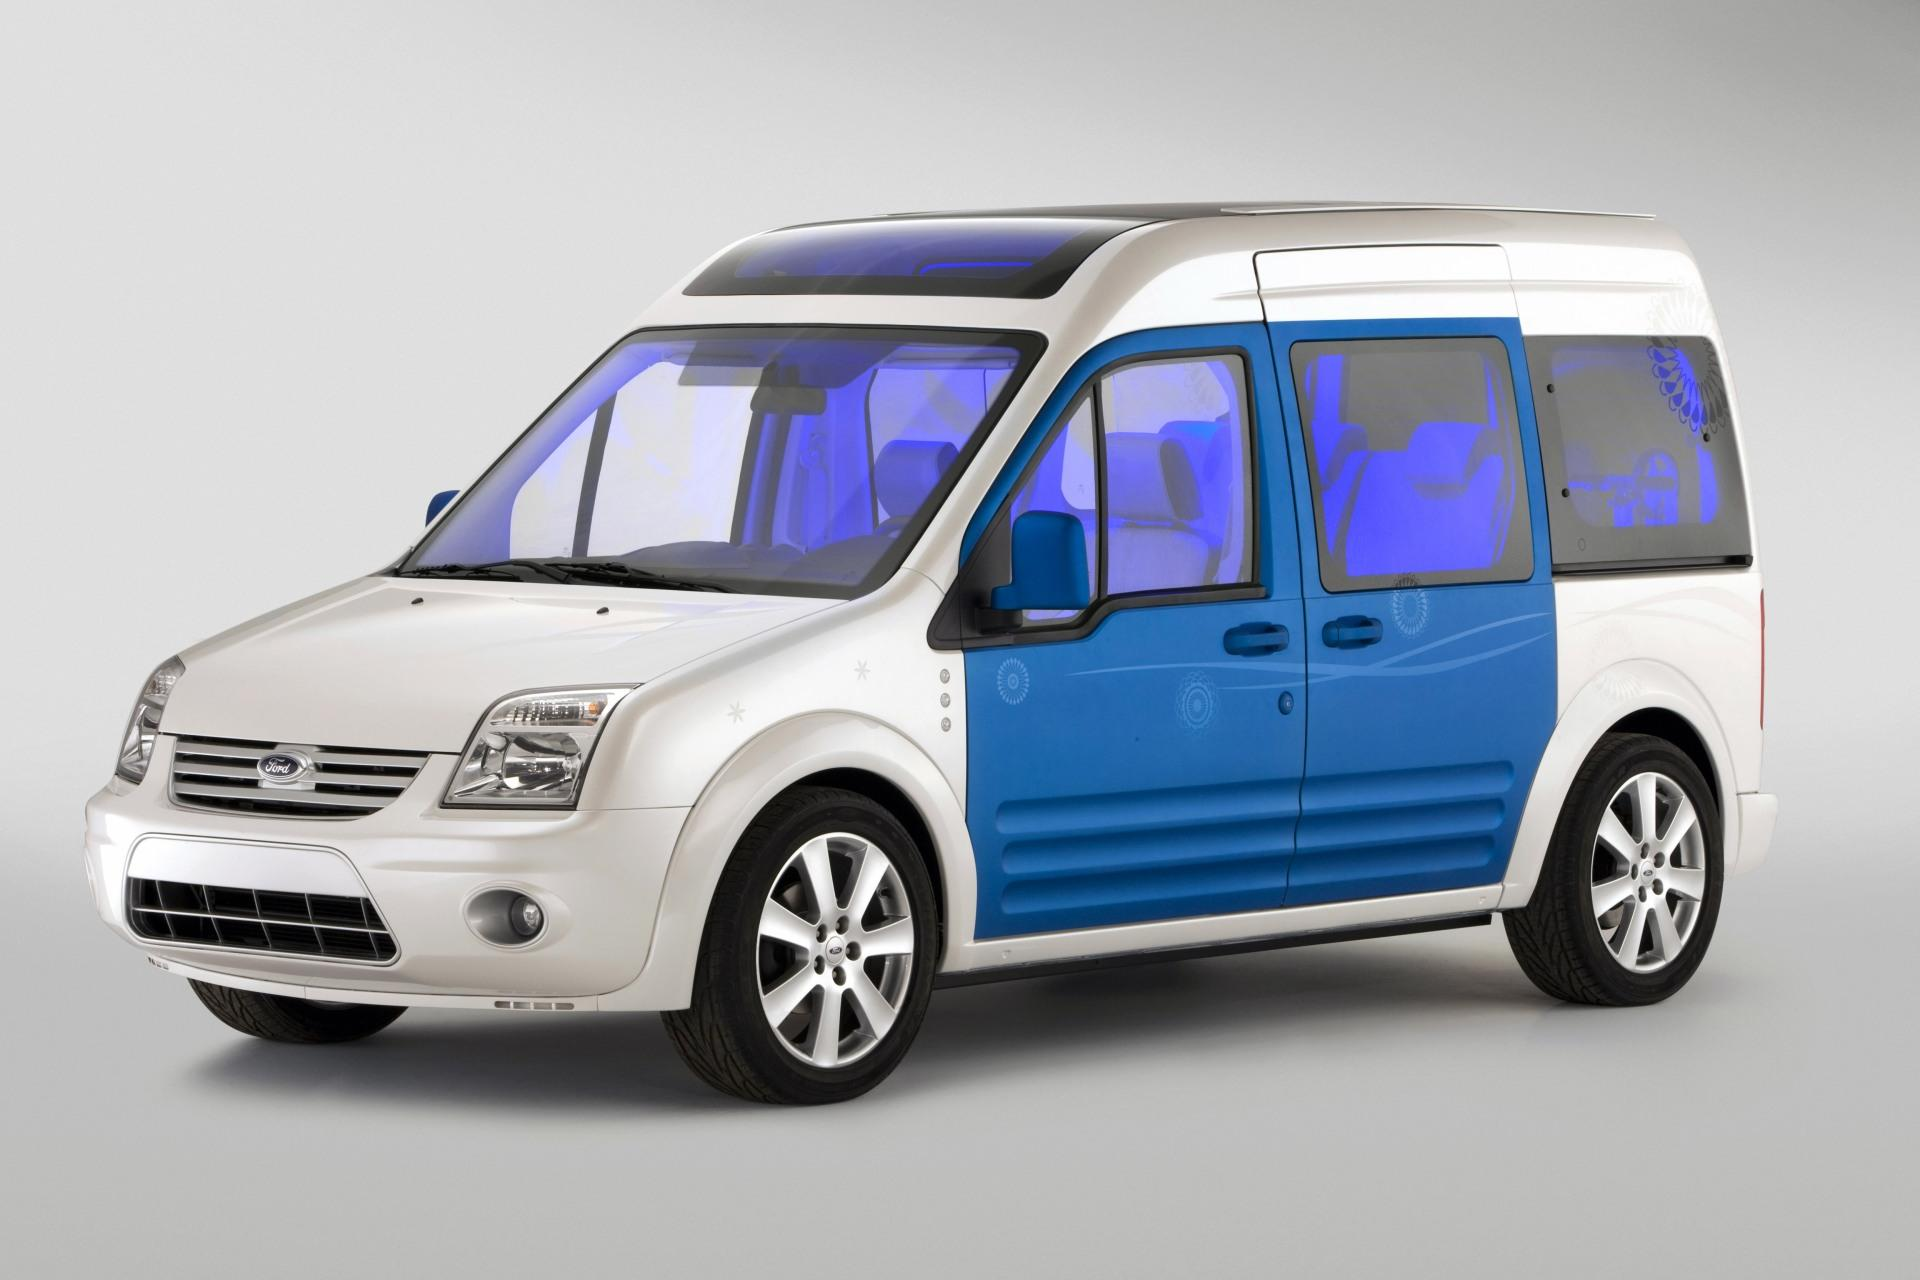 2010 ford transit connect family one concept news and information. Black Bedroom Furniture Sets. Home Design Ideas